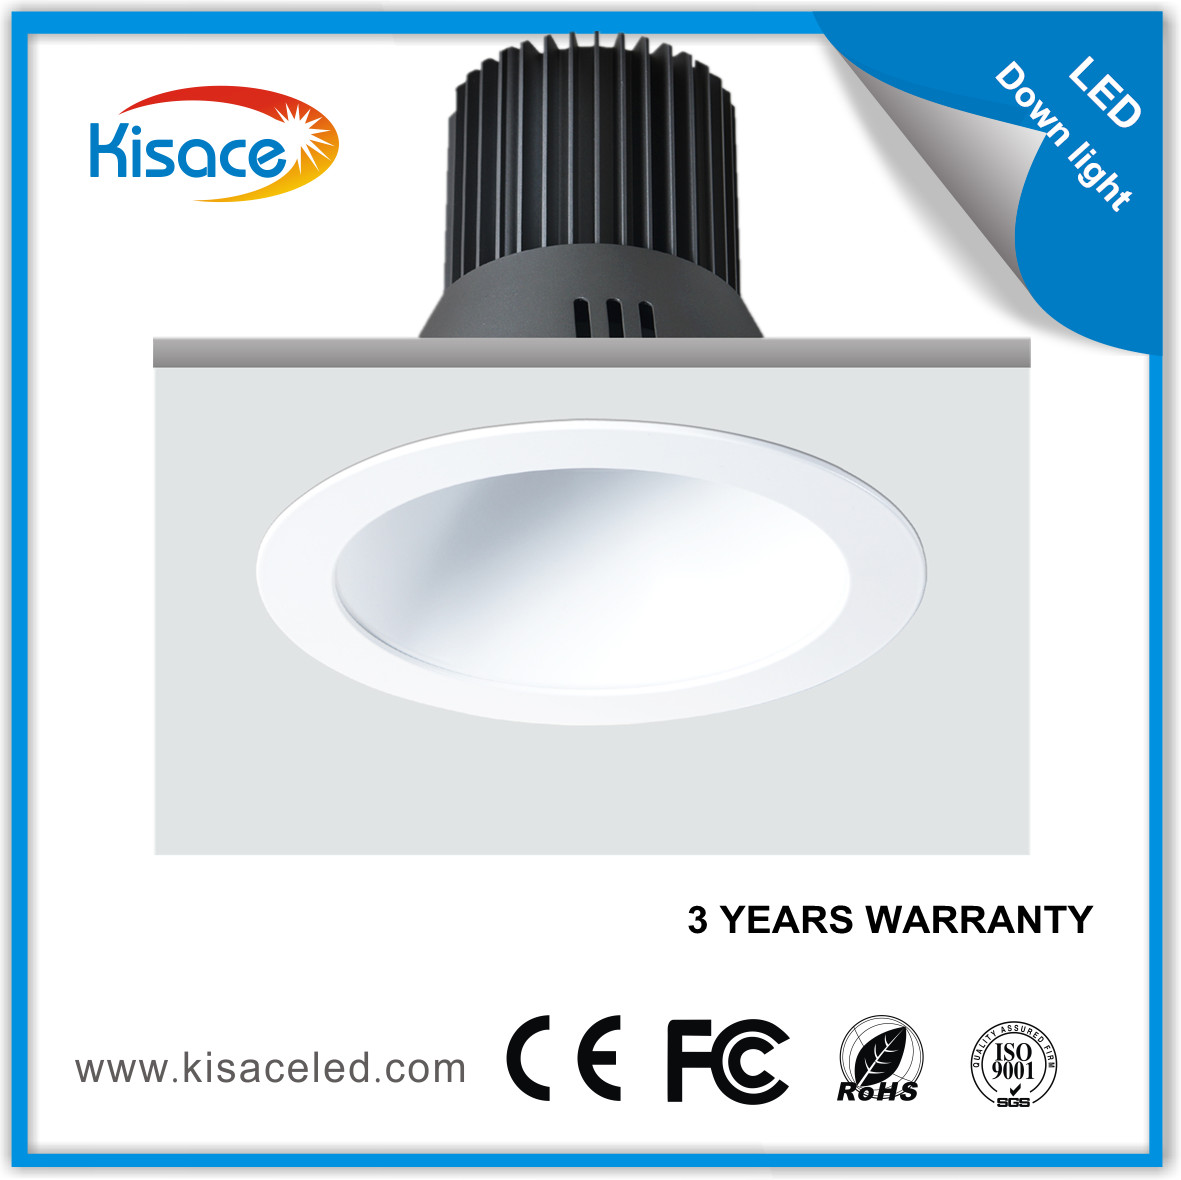 LED High Bay Light 400W can be extensively used in industrial workshops, stadiums, docks, golf cours